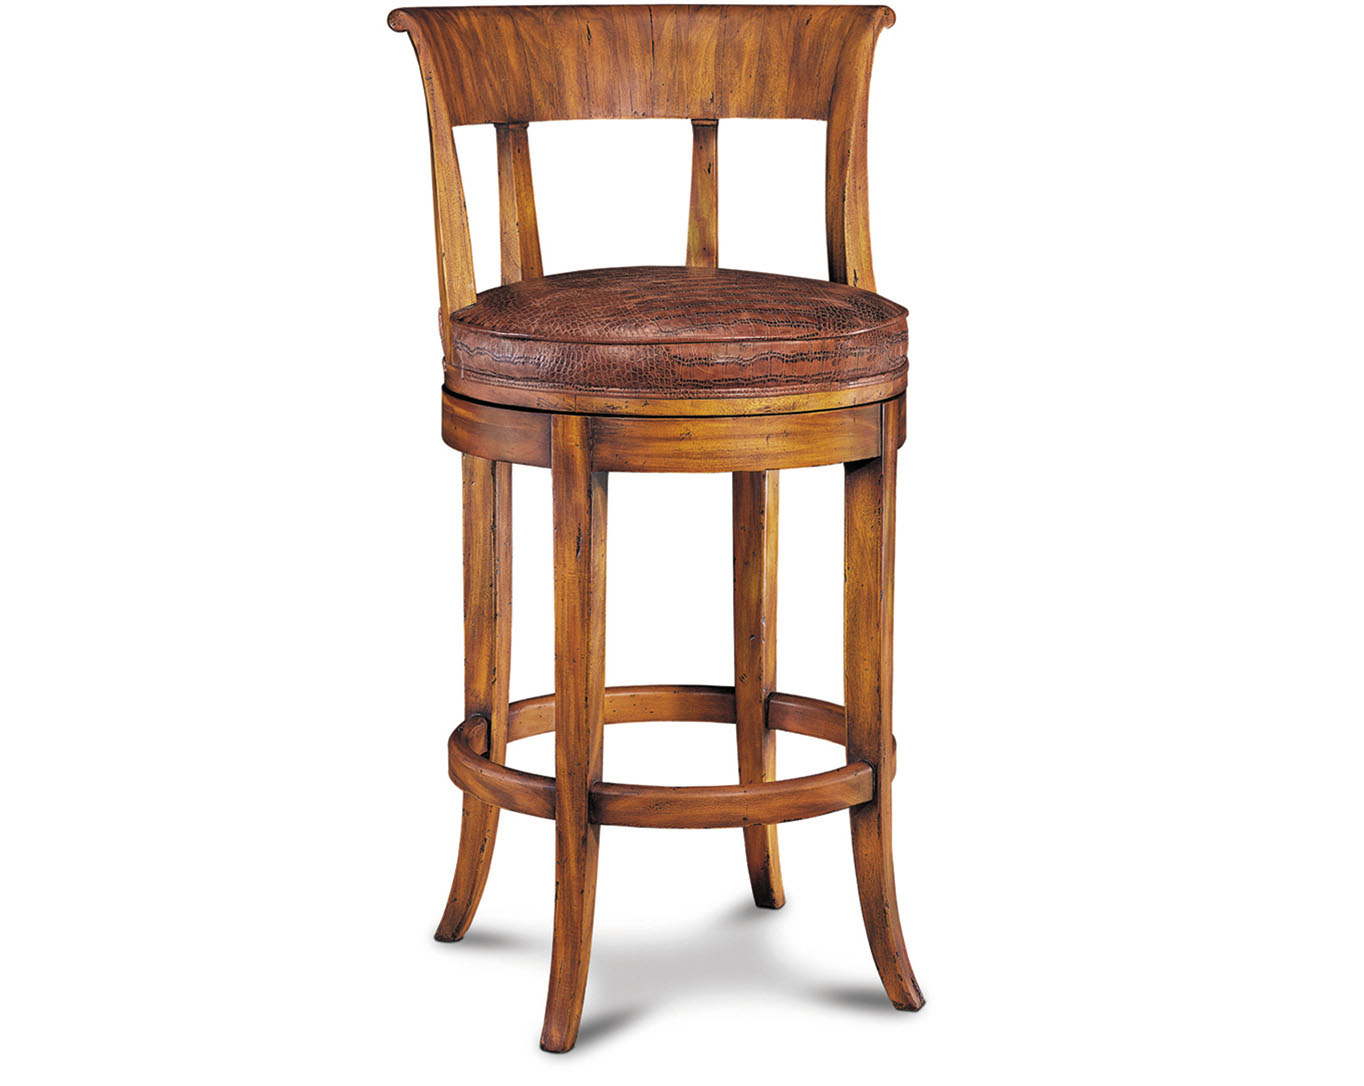 BIEDERMEIER BAR STOOL